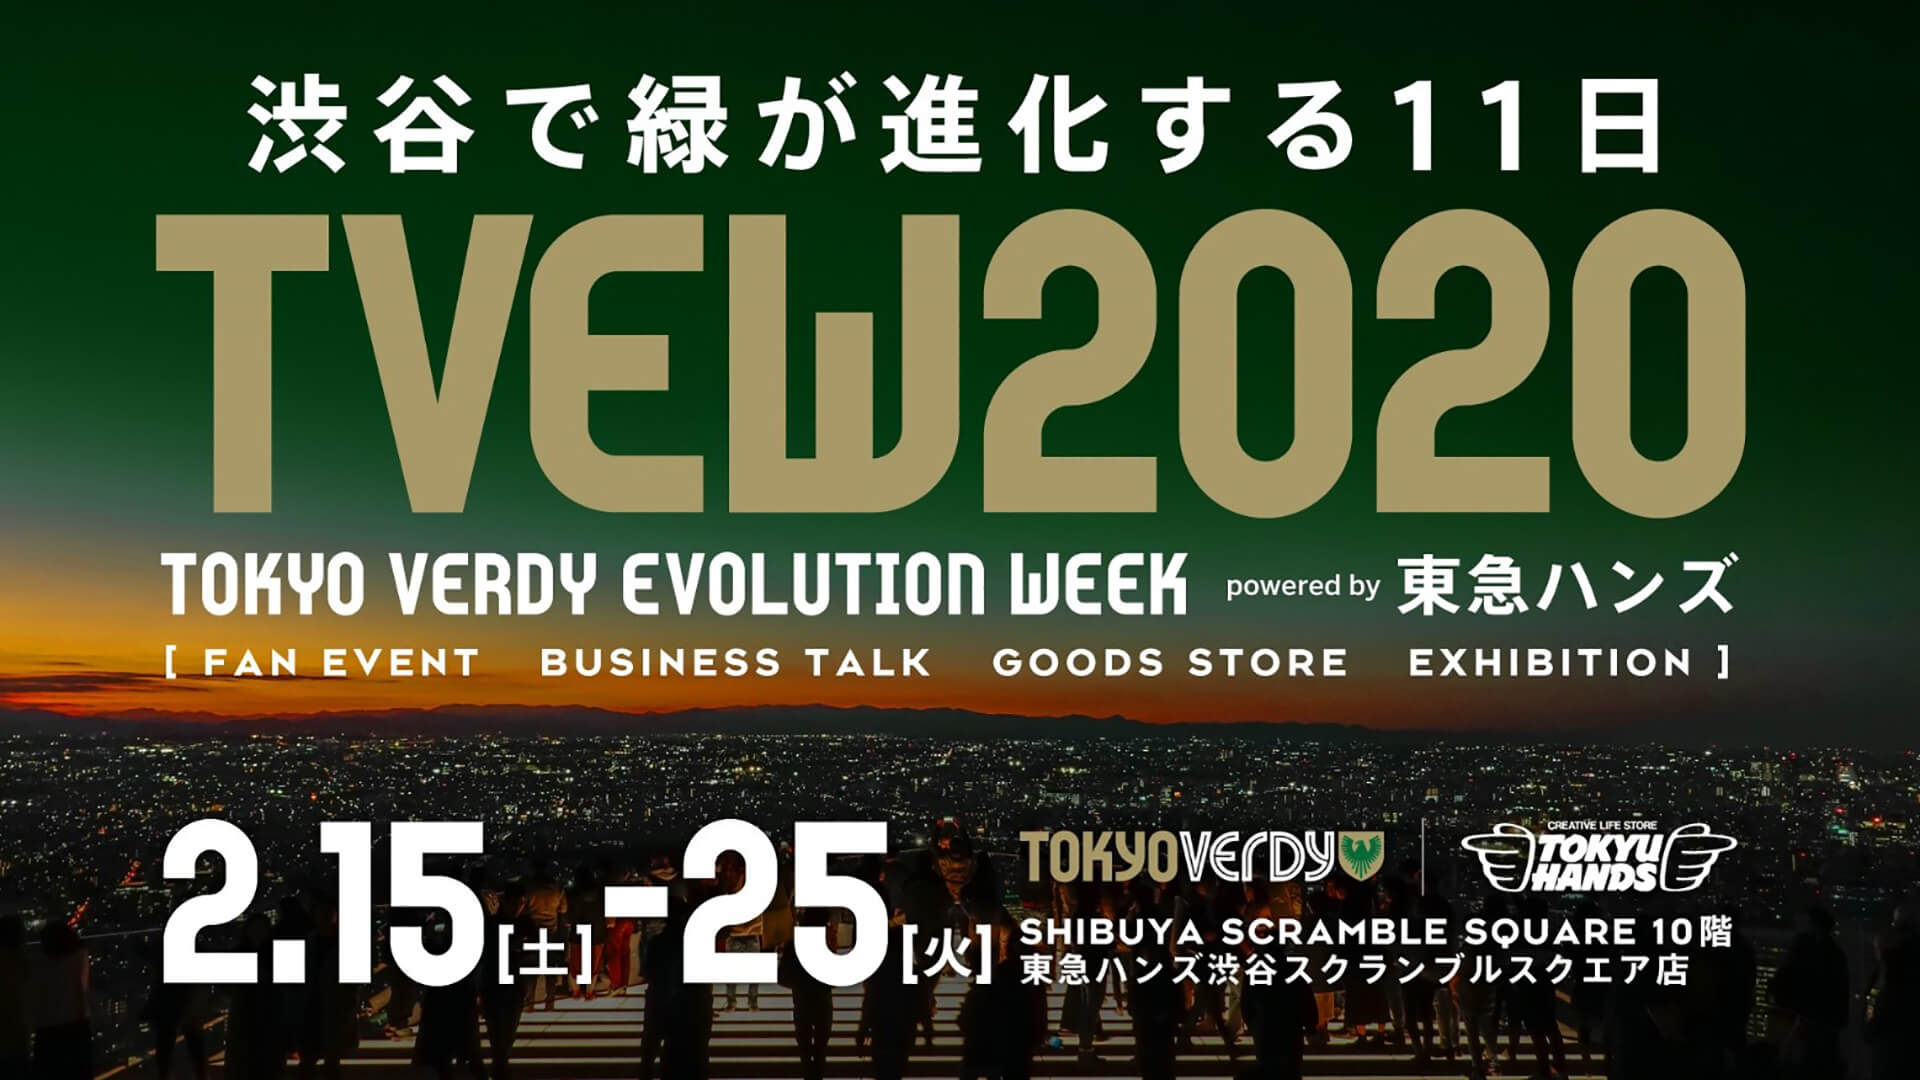 TOKYO VERDY EVOLUTION WEEK 2020 in SHIBUYA powered by 東急ハンズ